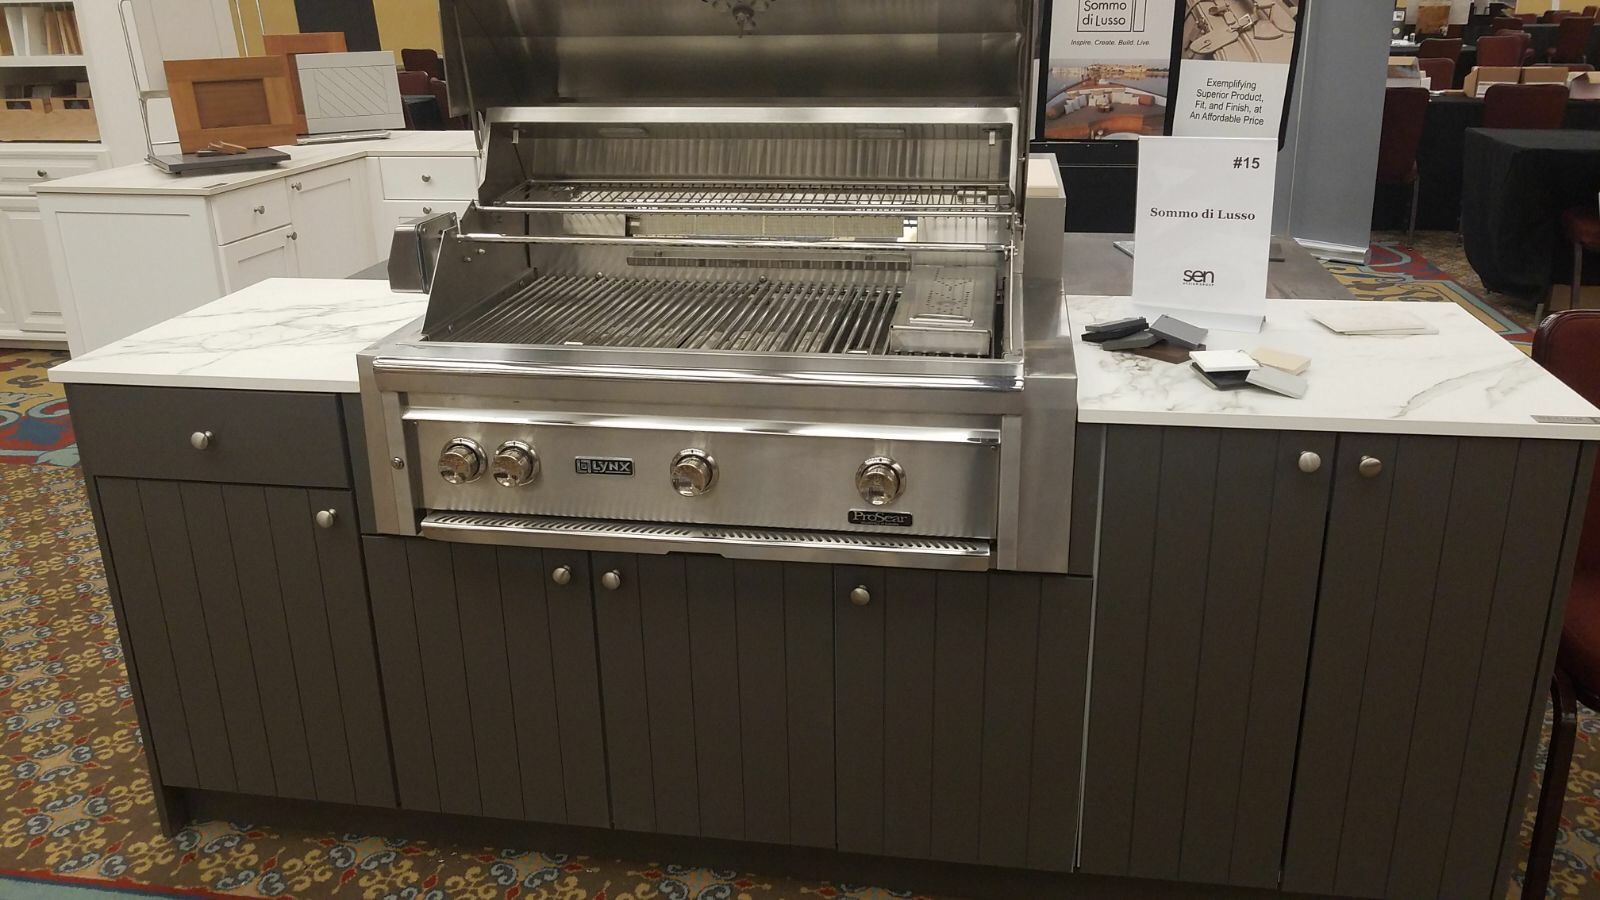 Sommo di Lusso by Atlantis Cabinets outdoor cabinetry at SEN Fall 2017 Conference